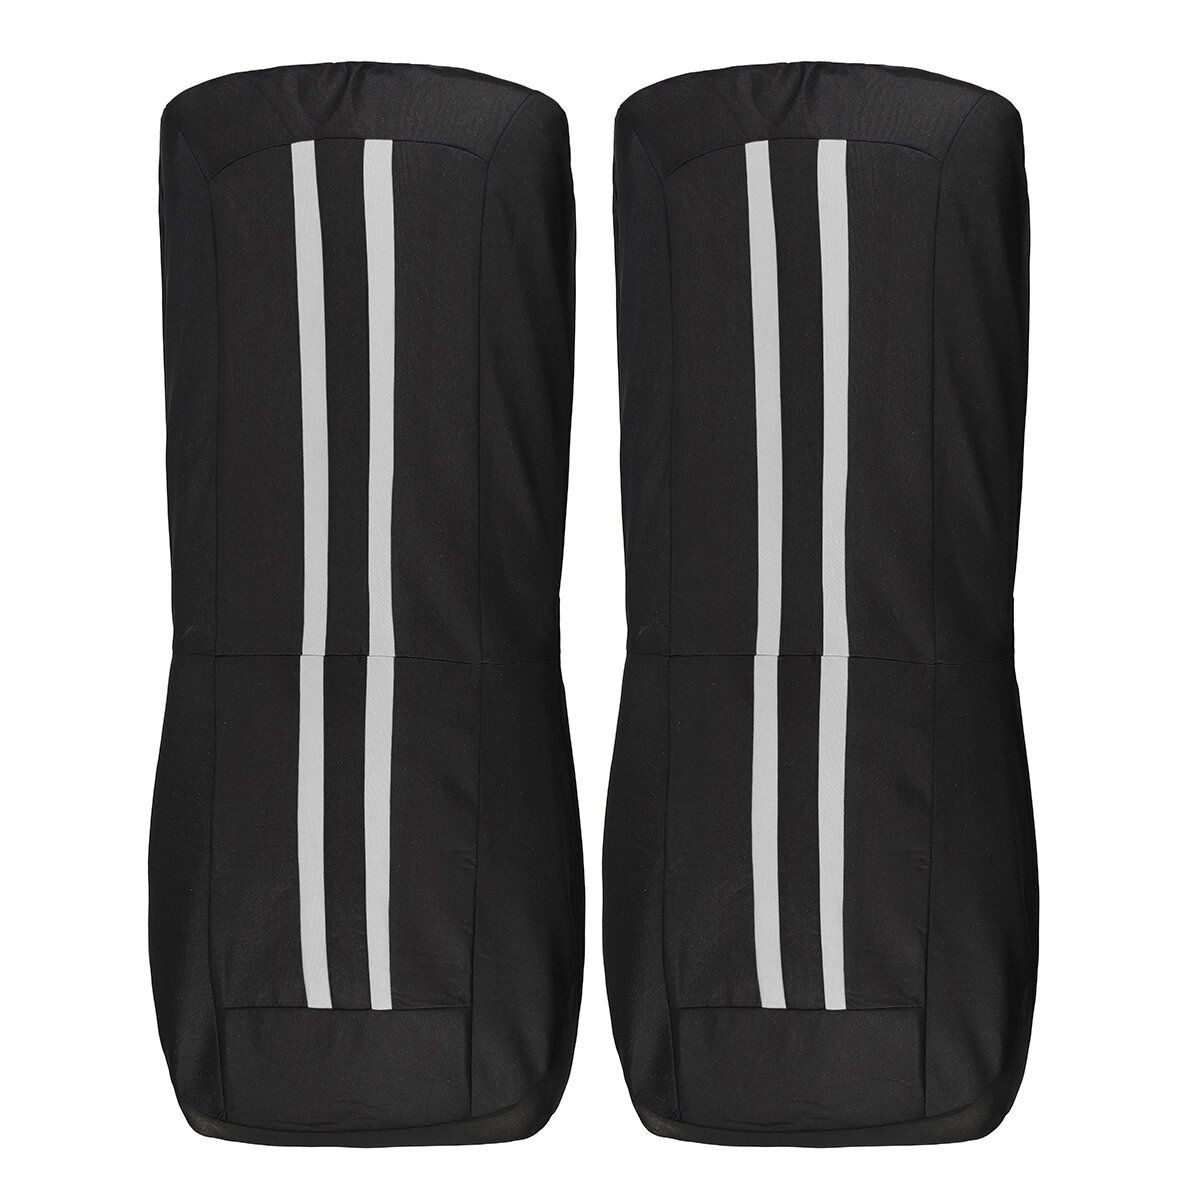 LPB US$29.74 Polyester Fabric Car Front and Back Seat Cover Cushion Protector Universal for Five Seats Car